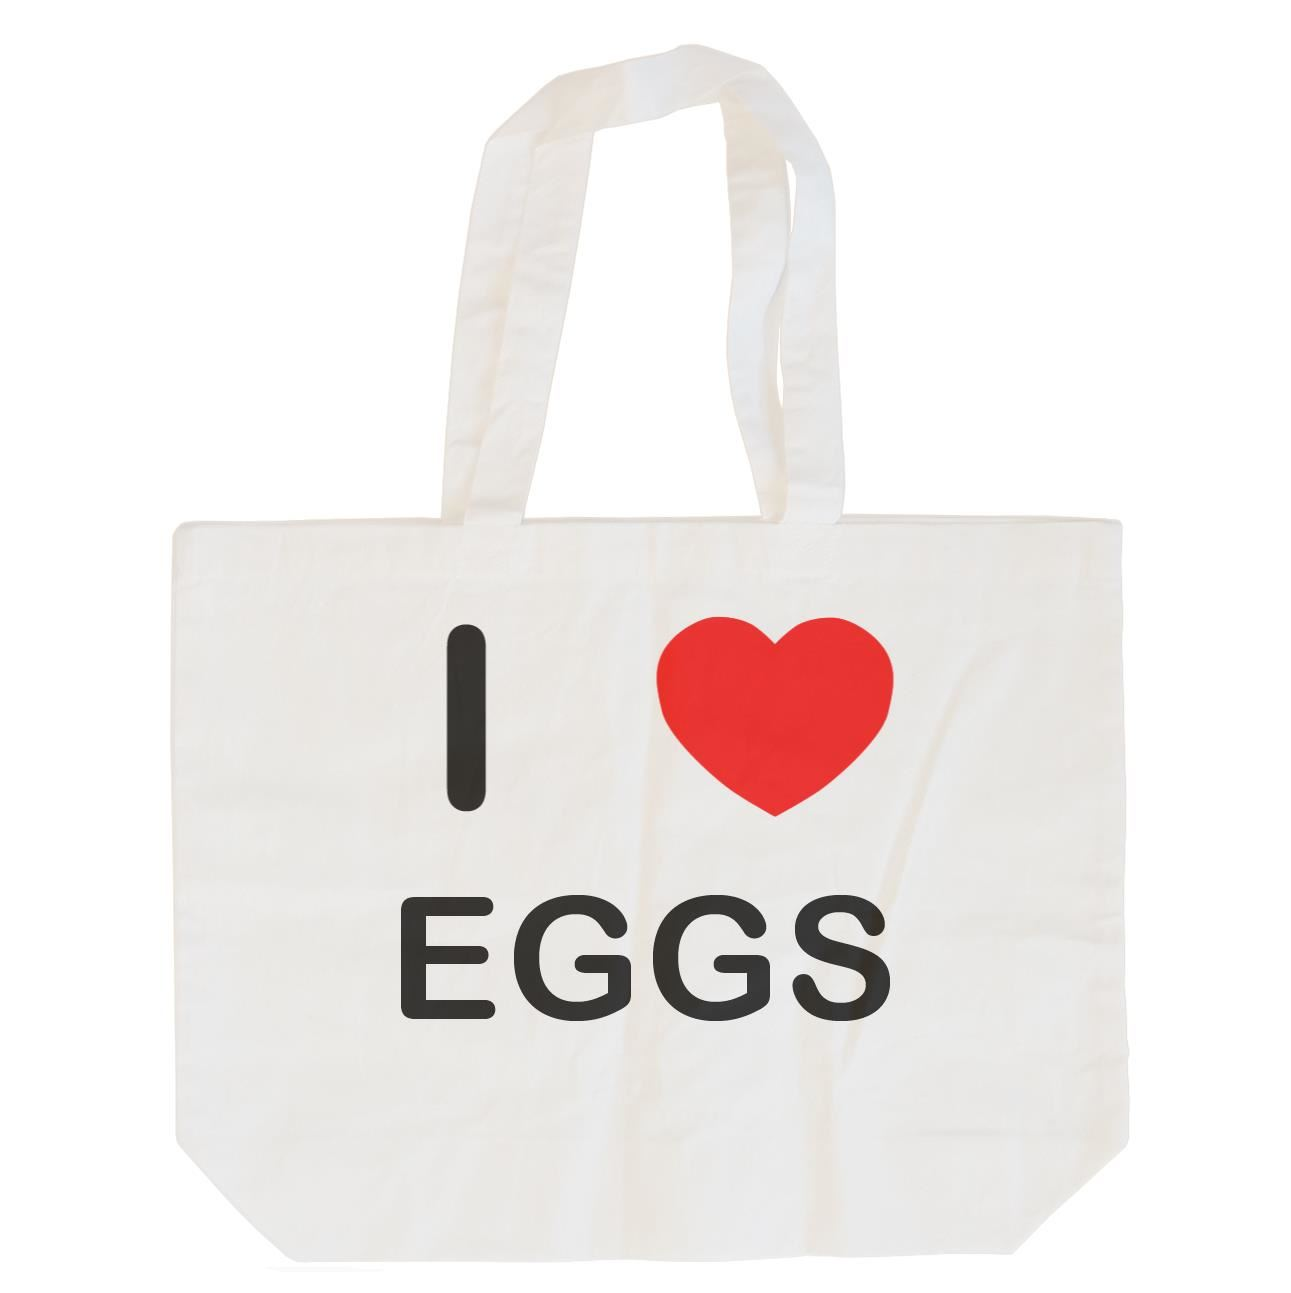 I Love Eggs - Cotton Bag | Size choice Tote, Shopper or Sling